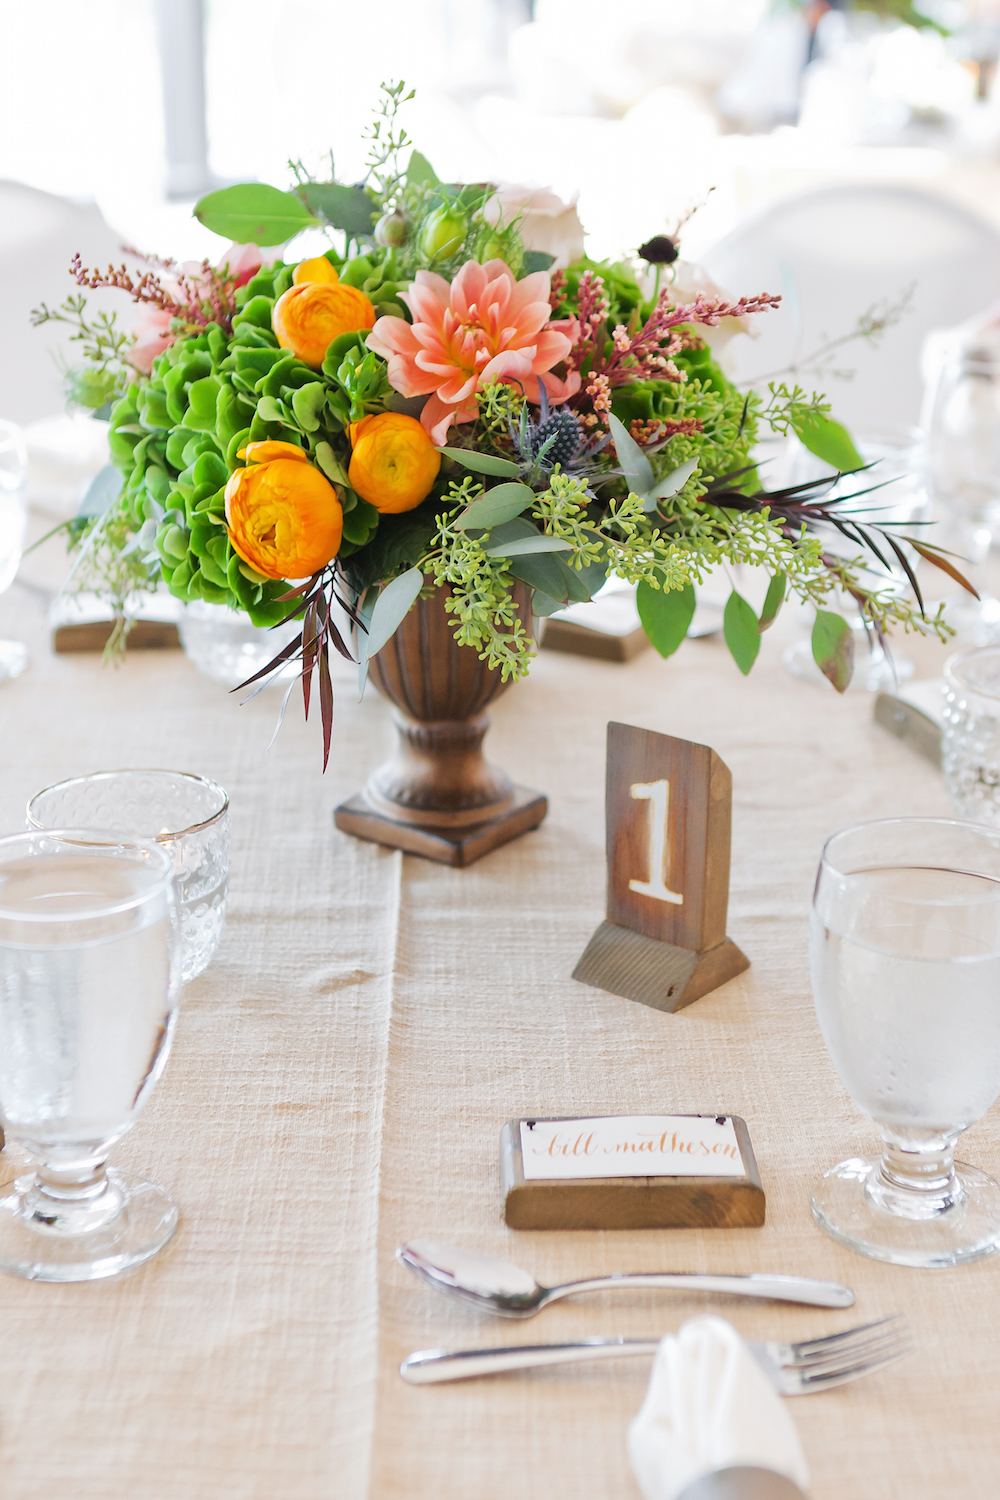 Peach and orange Wedding Flowers - Wedding Centrepiece Ideas